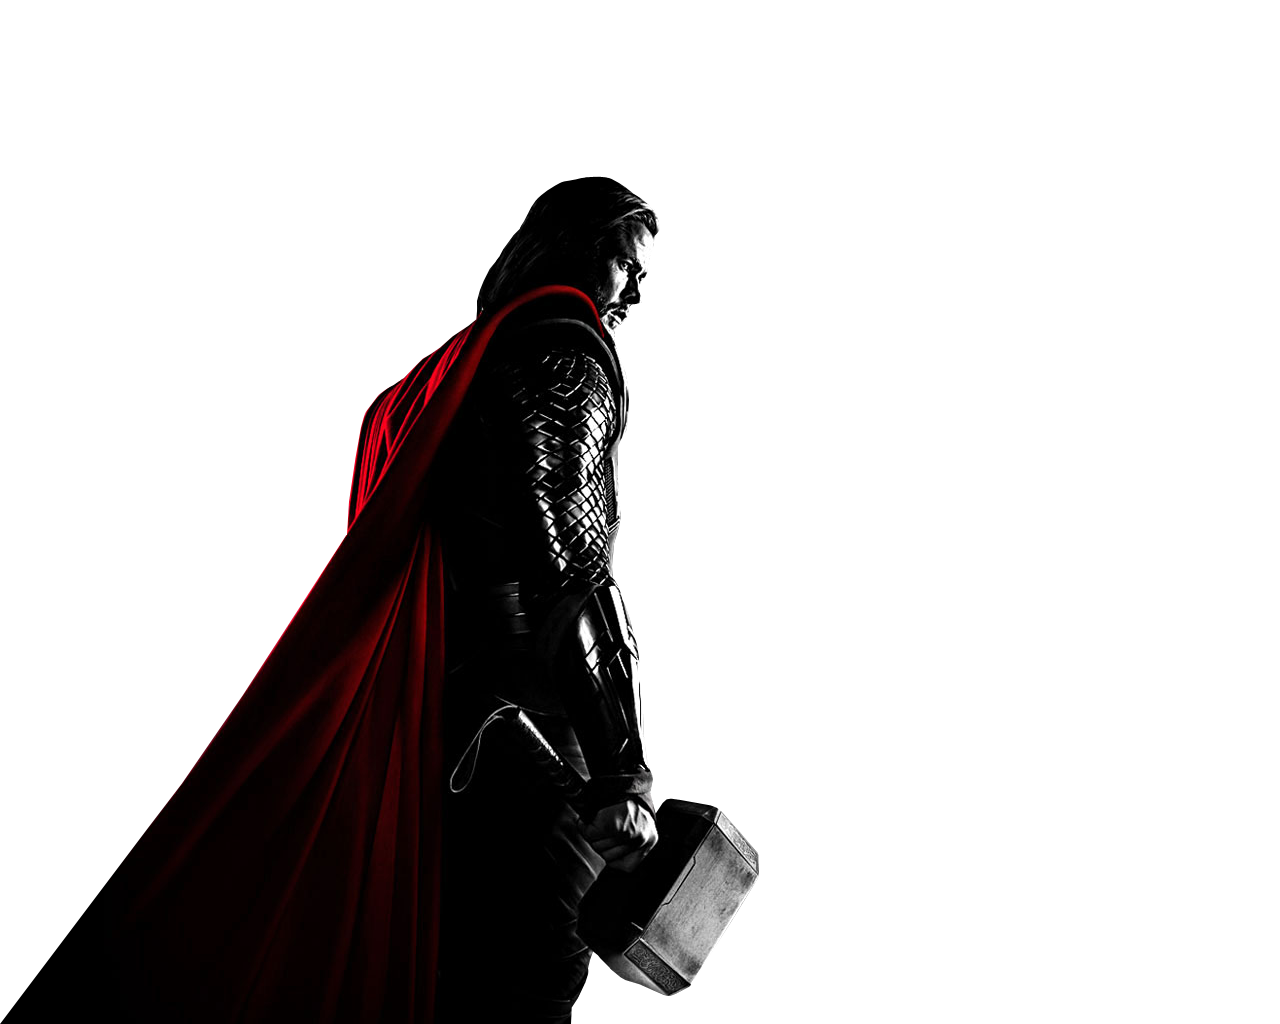 Download Thor Png: Hd Background Transparent Png Thor #18509